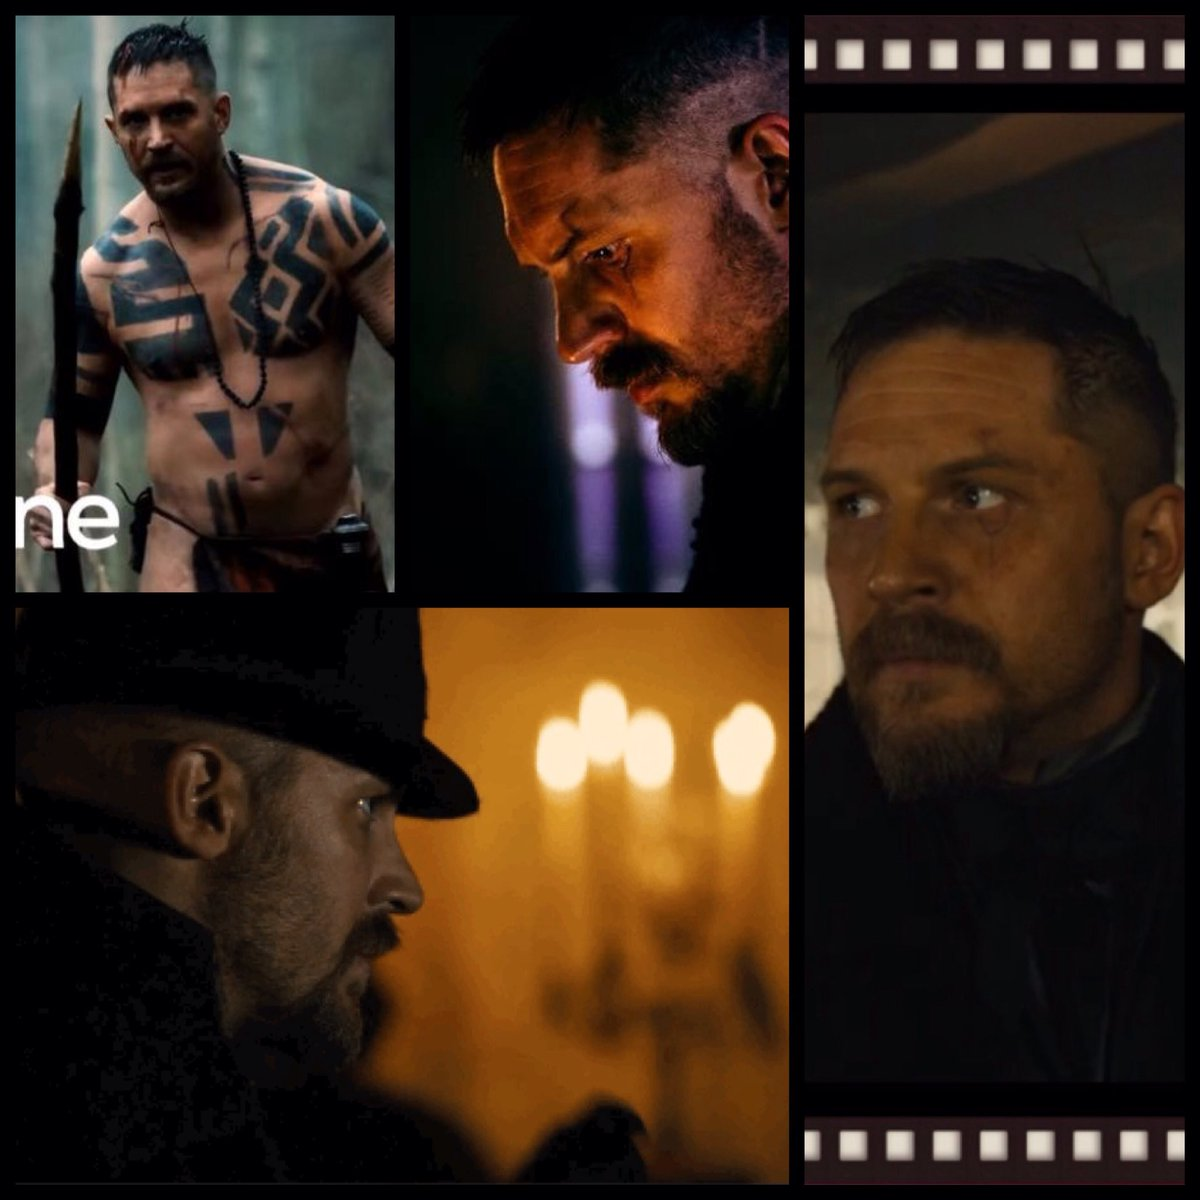 James Delaney I miss you! #TomHardy #Taboo<br>http://pic.twitter.com/THEZ27jkIj